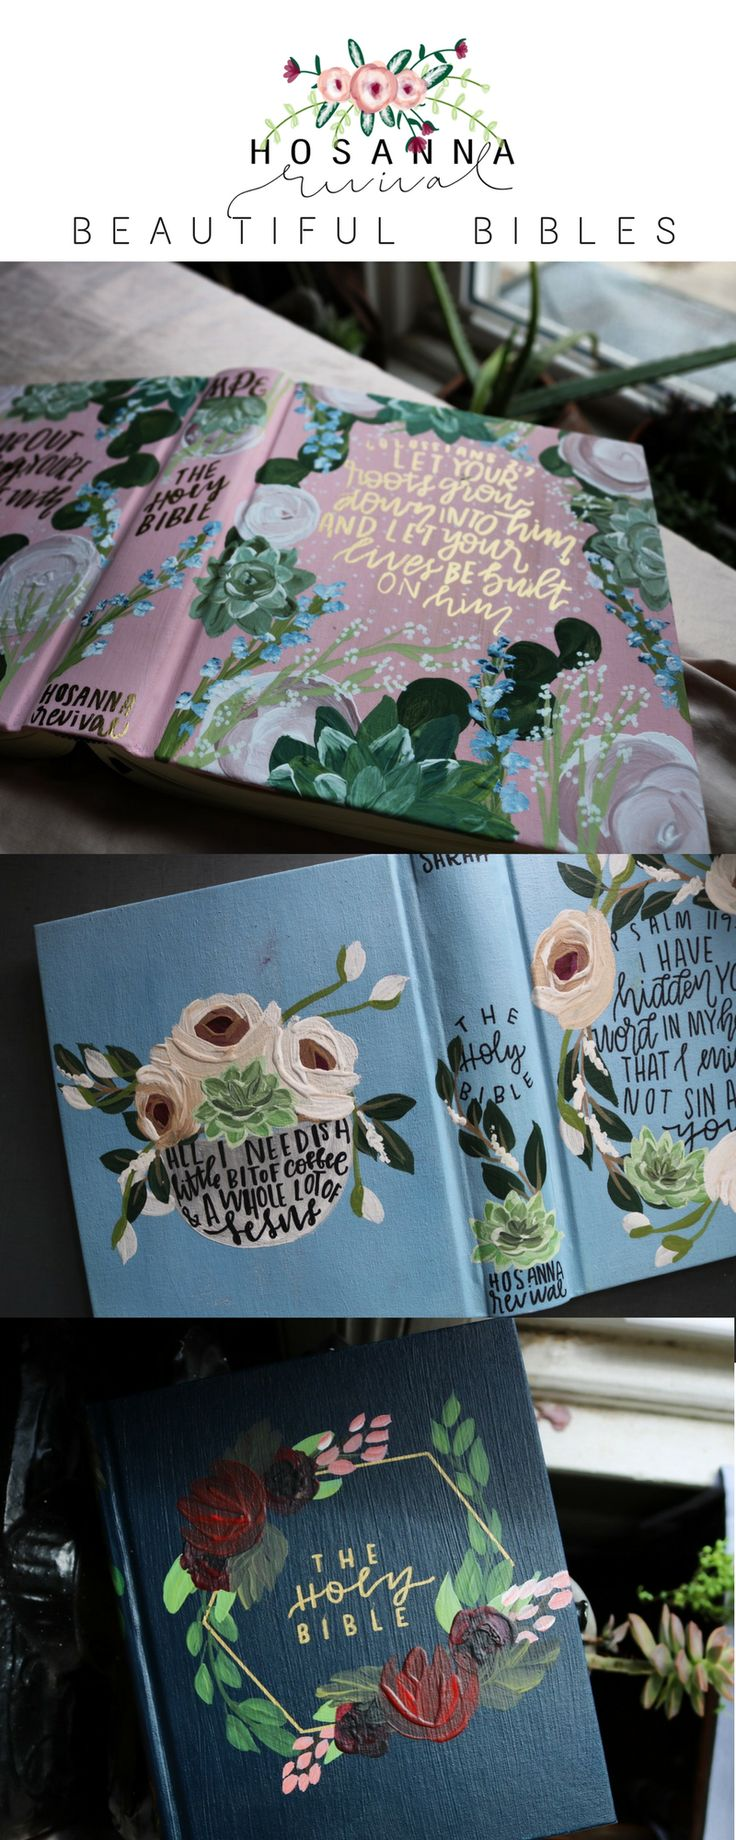 Hosanna Revival hand painted Bibles. Making the outside of this sacred book as beautiful as the words on the inside.